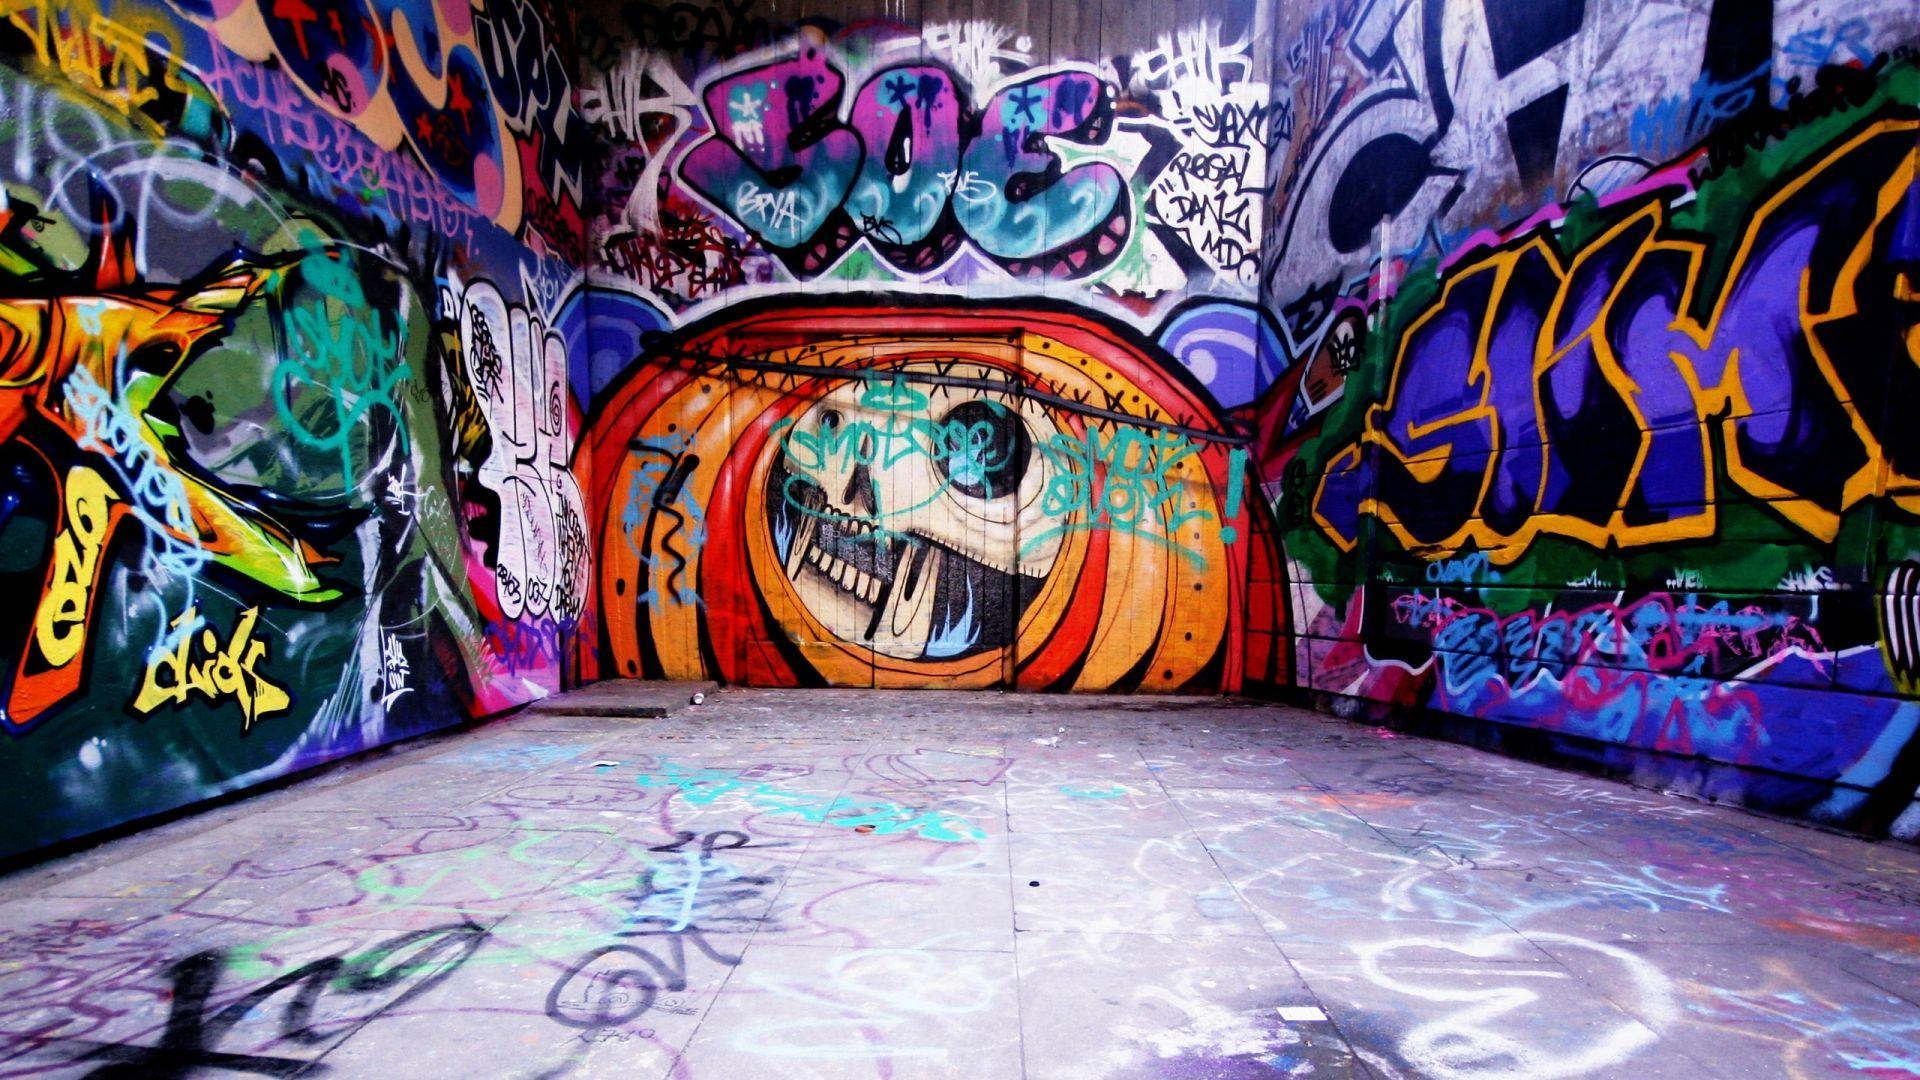 Hd wallpaper creative graffiti artworks for 1920x1080 1080p надо